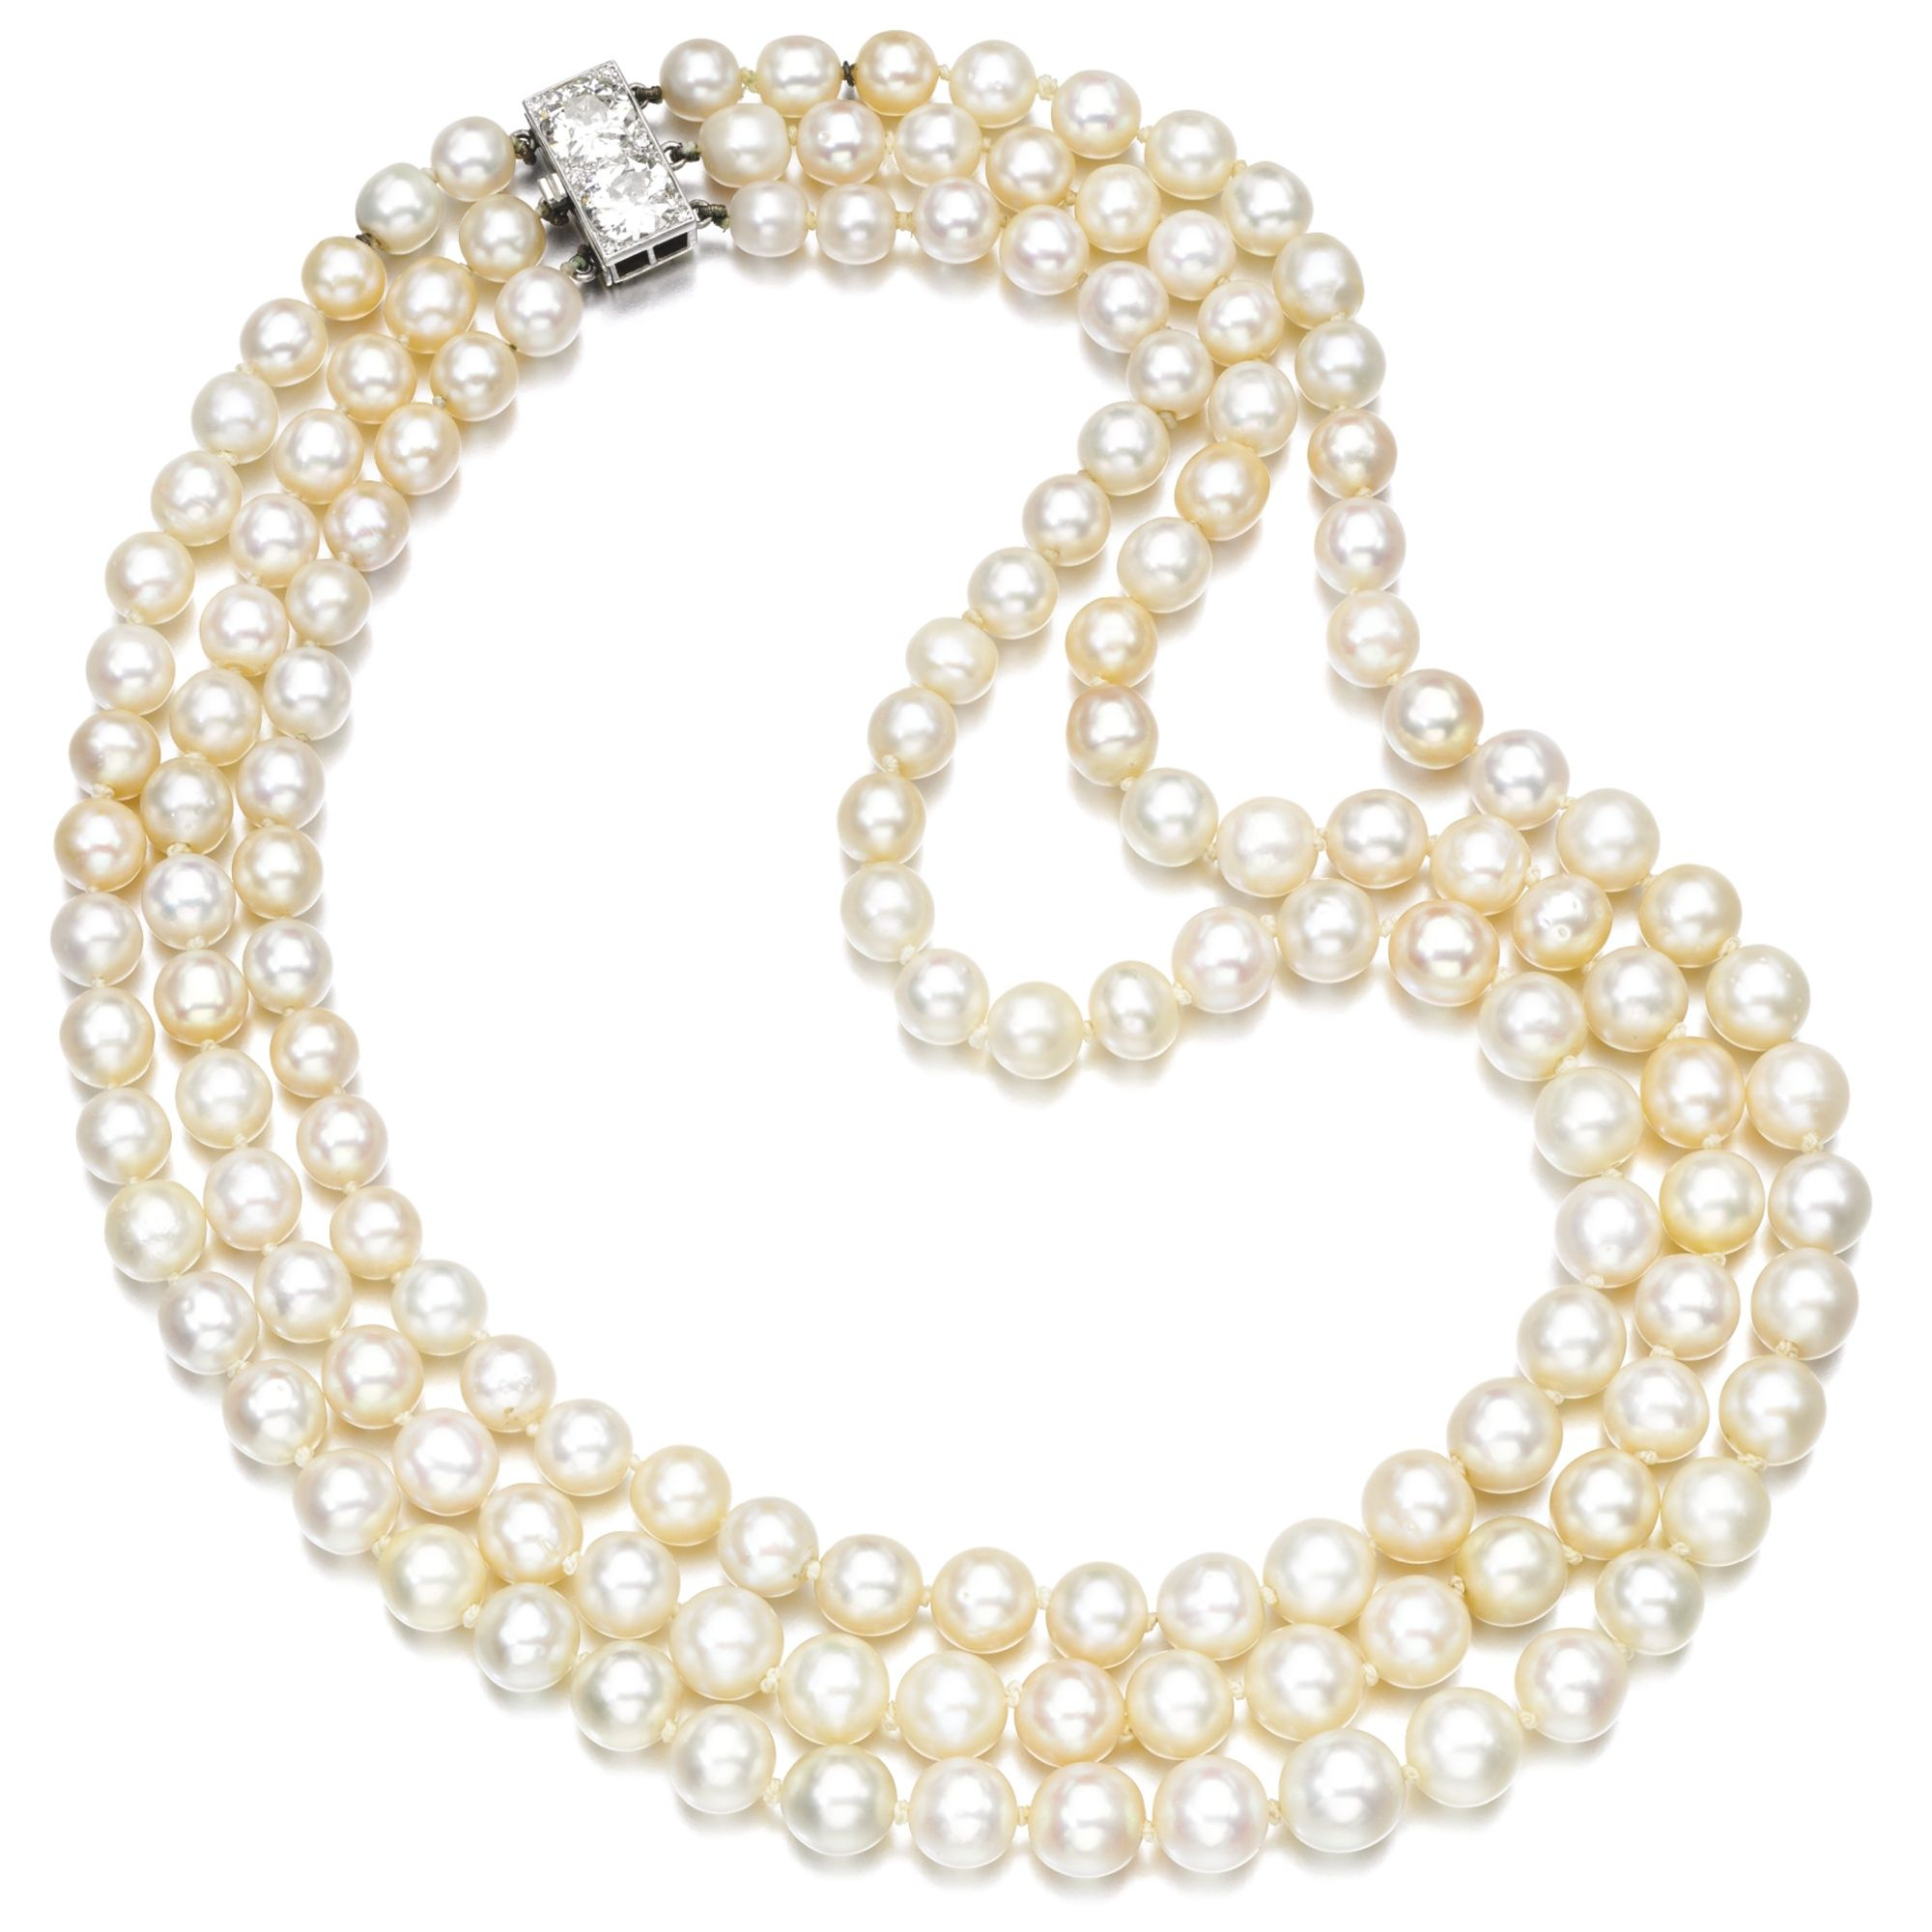 Old Pearl Necklace With Diamond Clasp